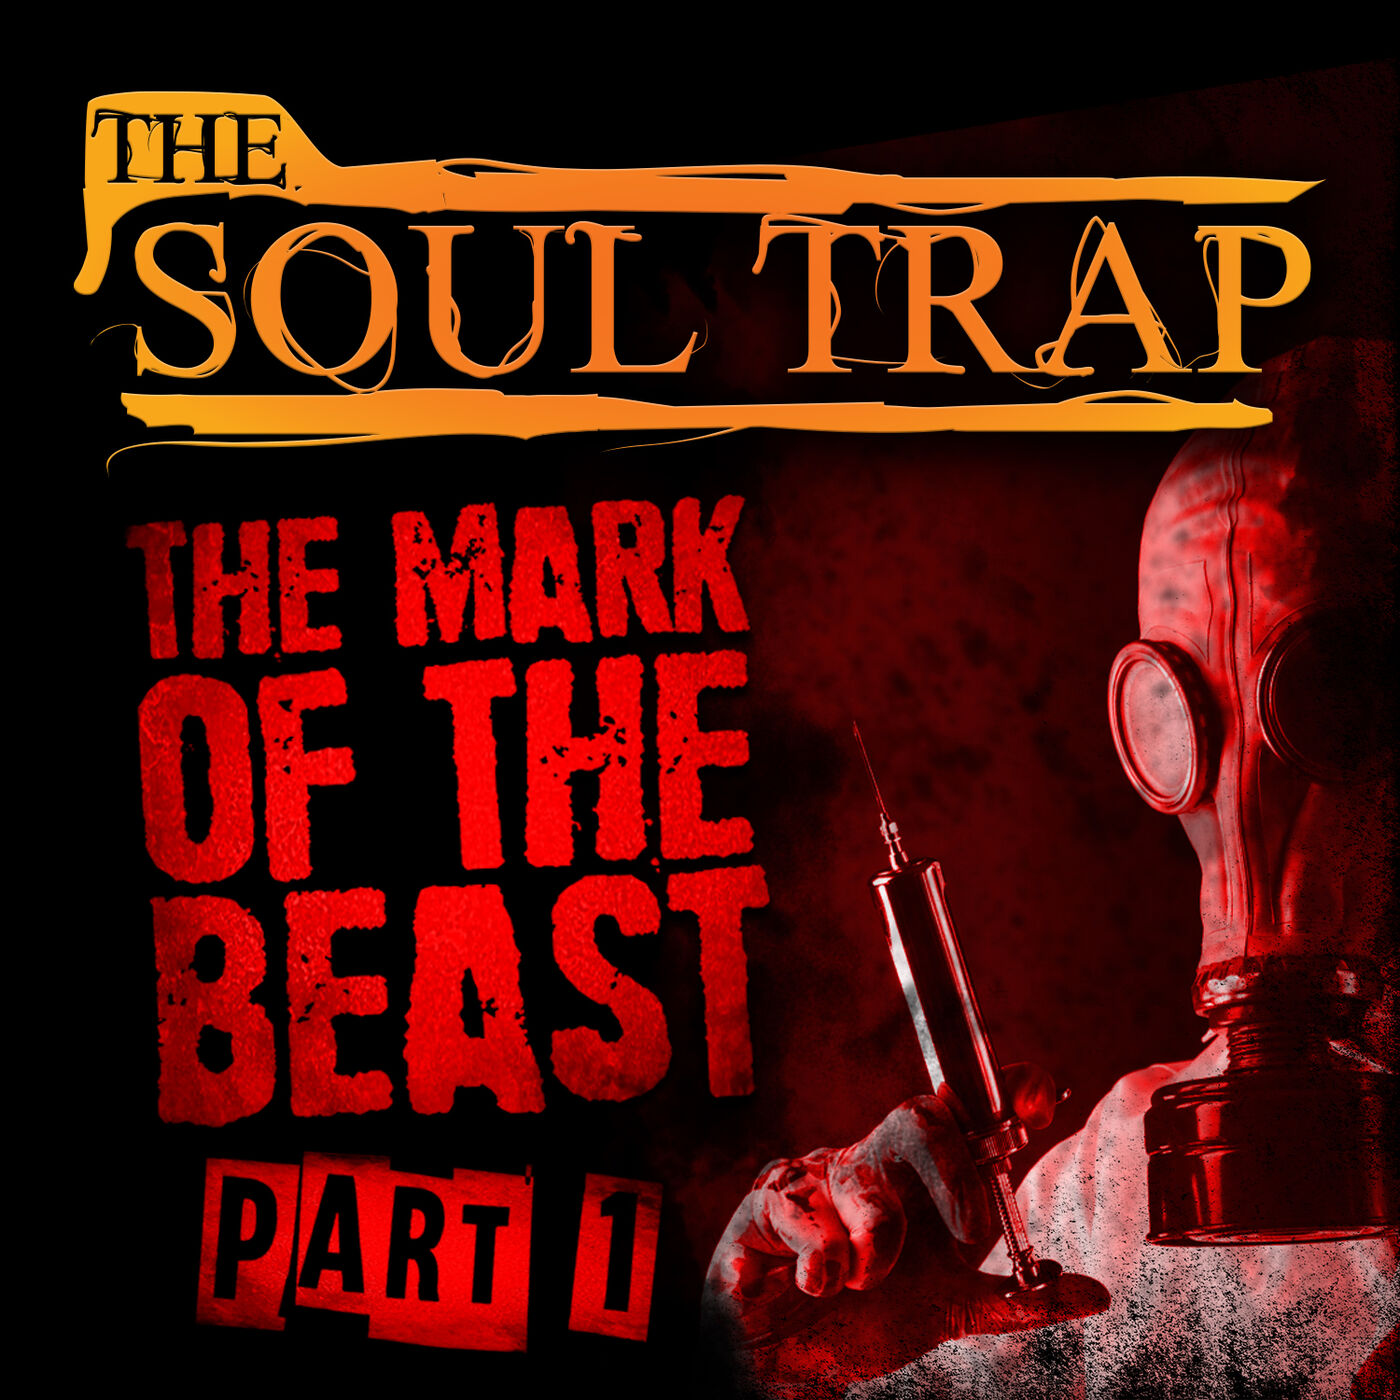 The Mark Of the Beast - Part 1